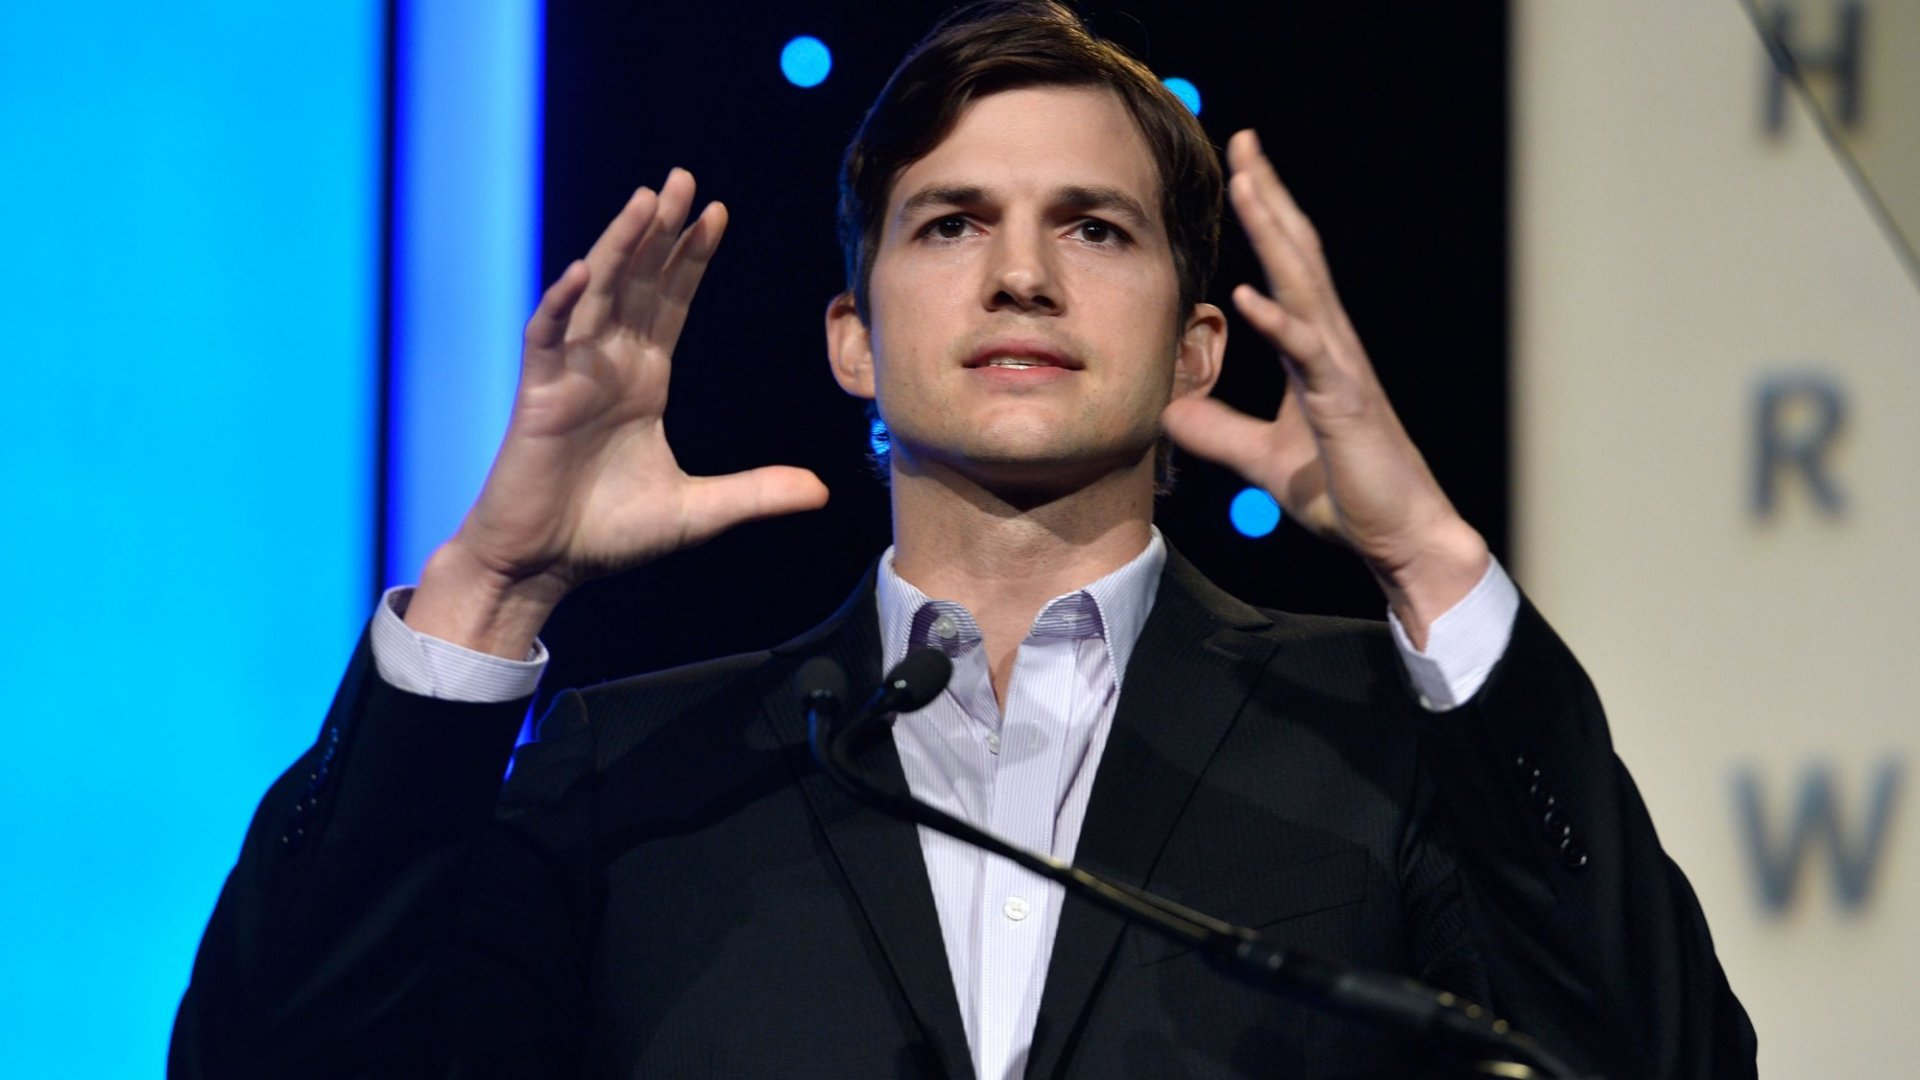 Ashton Kutcher Talks Gender Equality and Ending 'Hall Passes' for Sexual Harassment